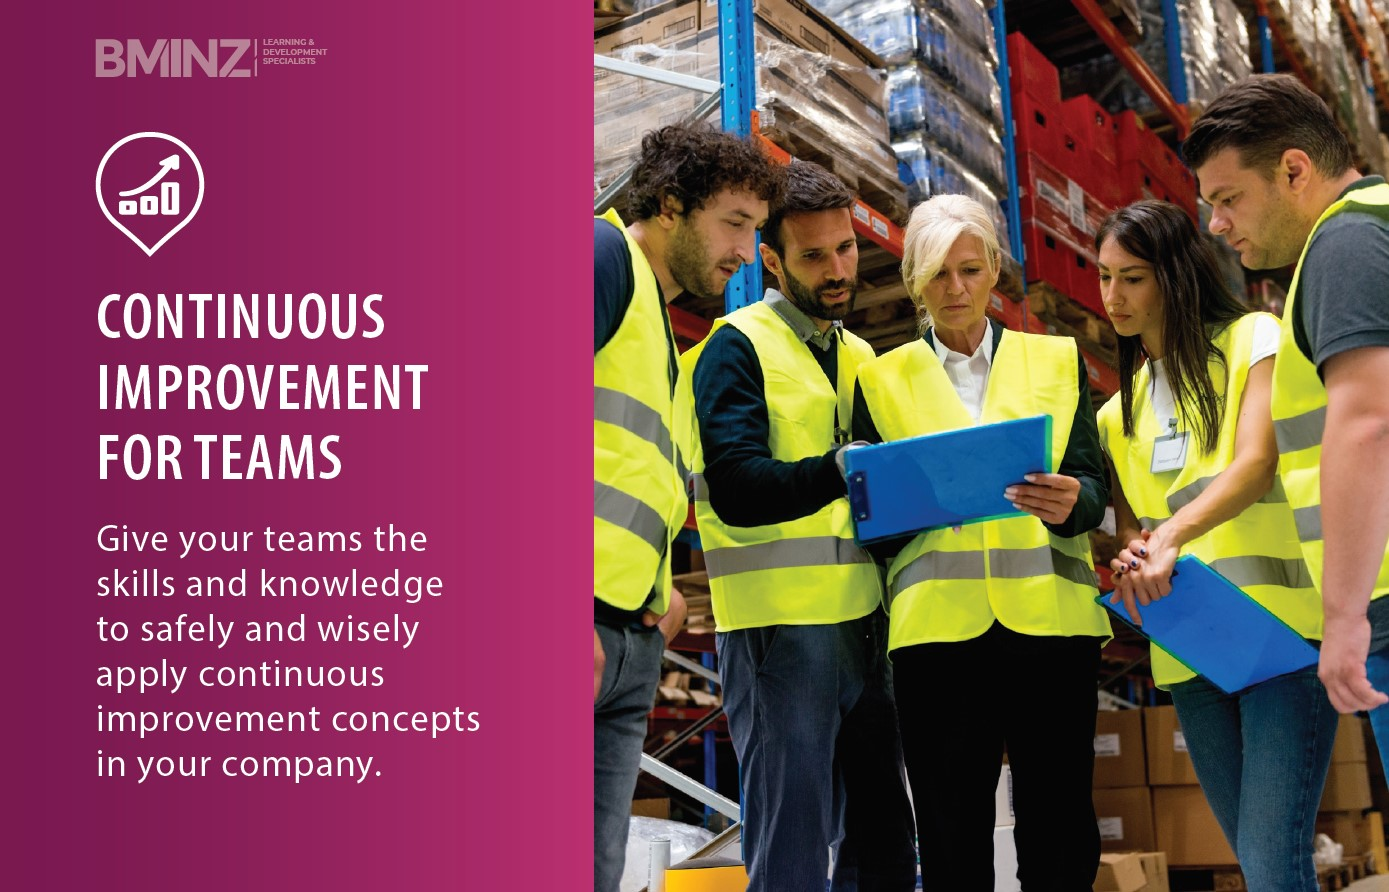 CONTINUOUS IMPROVEMENT FOR TEAMS: Give your teams the skills and knowledge to safely and wisely apply continuous improvement concepts in your company.